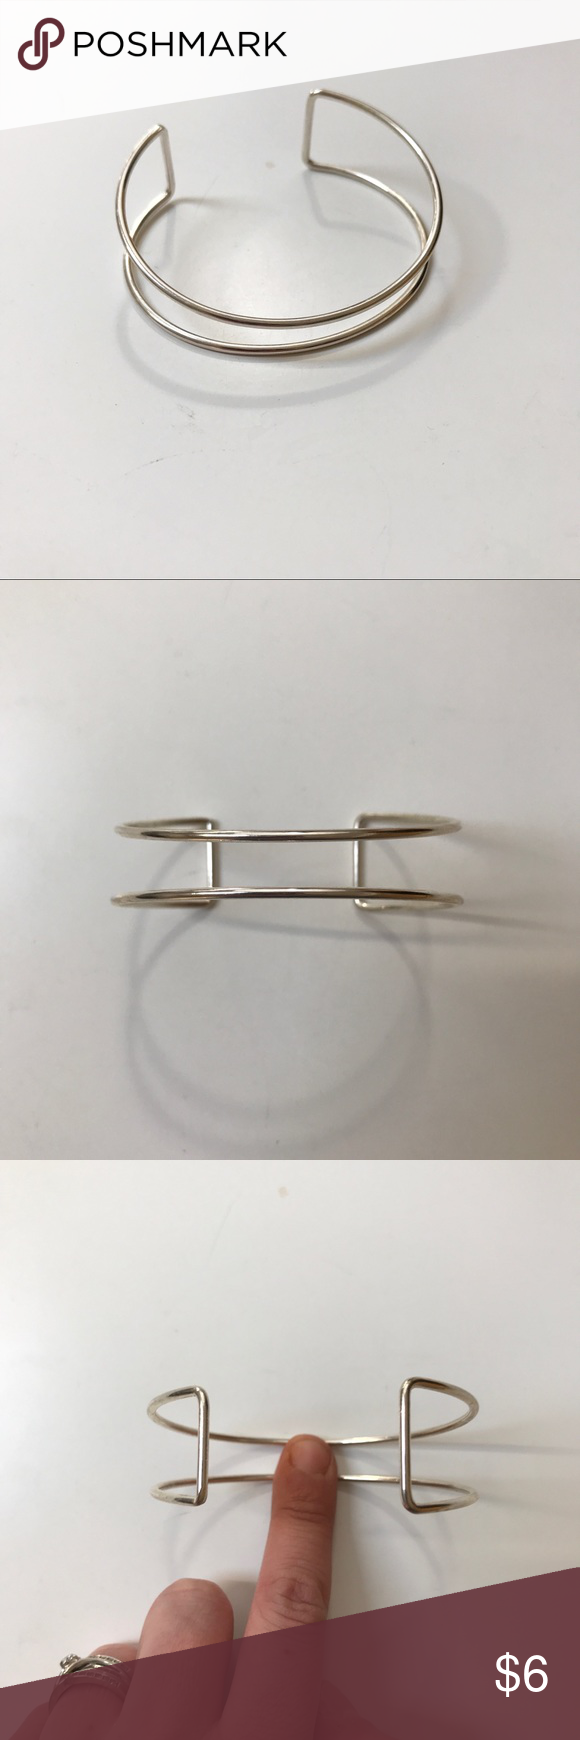 Silver Wire Cuff Bracelet Super cute and super simple but so perfect for everyday wear ❤️  Can be loosened or tightened though :) handmade Jewelry Bracelets